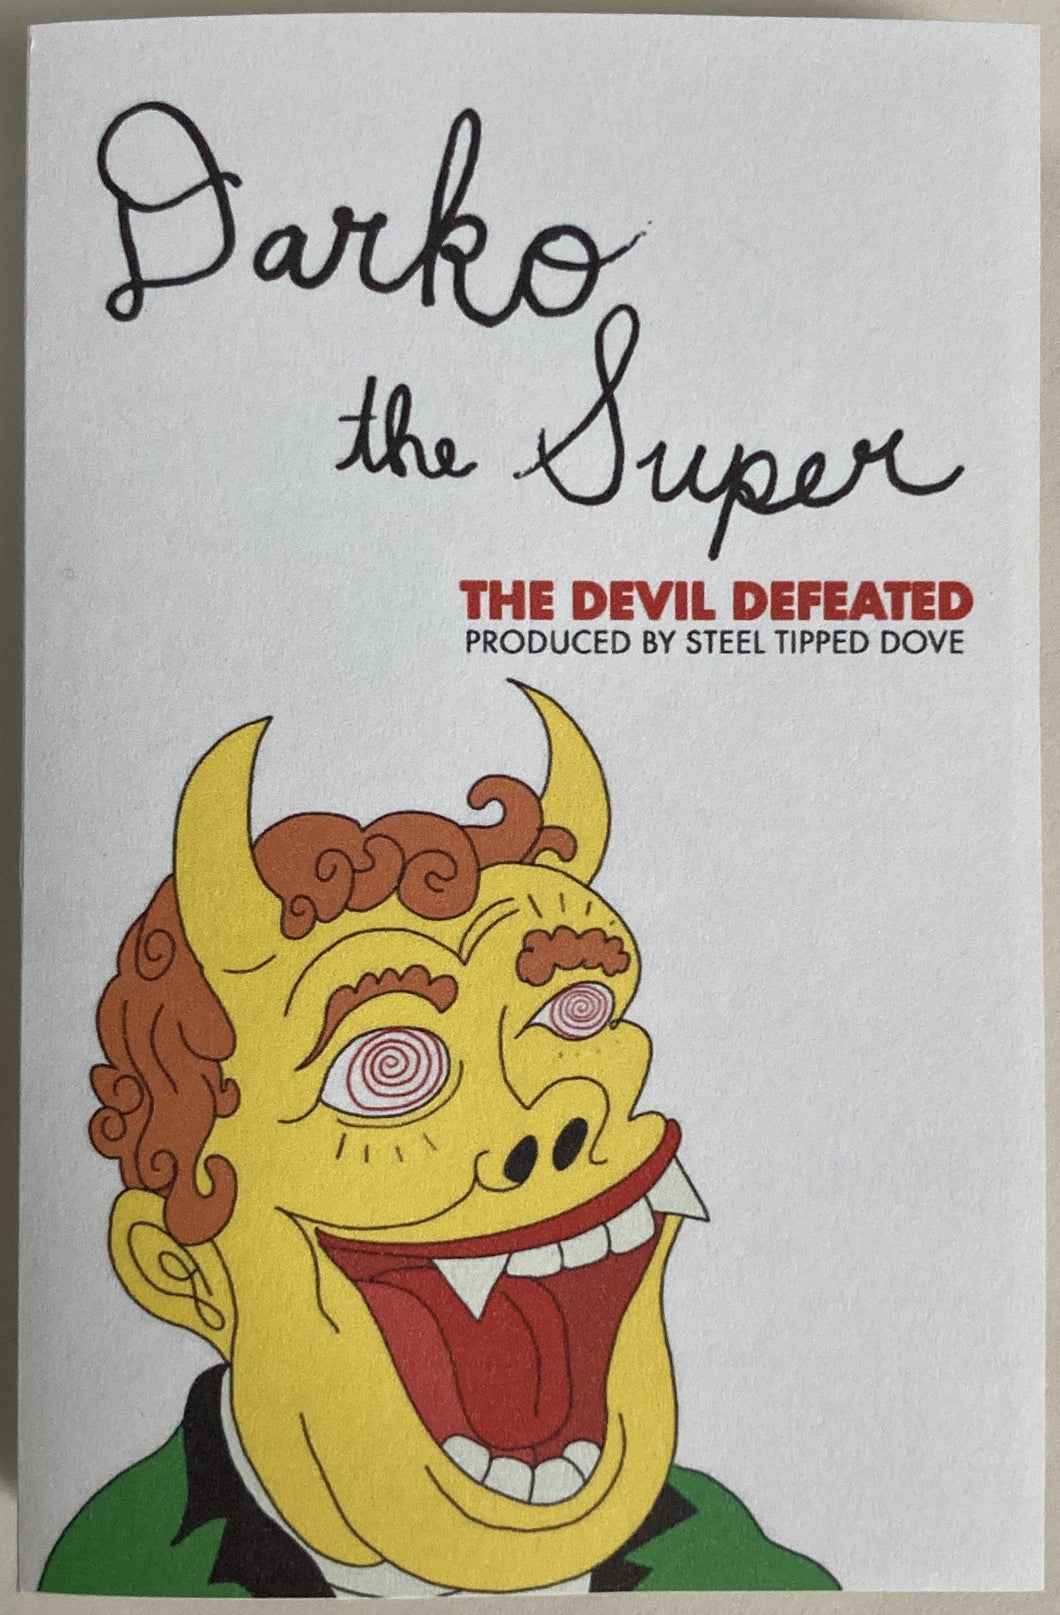 Darko The Super - The Devil Defeated (Already Dead Tapes)Cassette New/mint